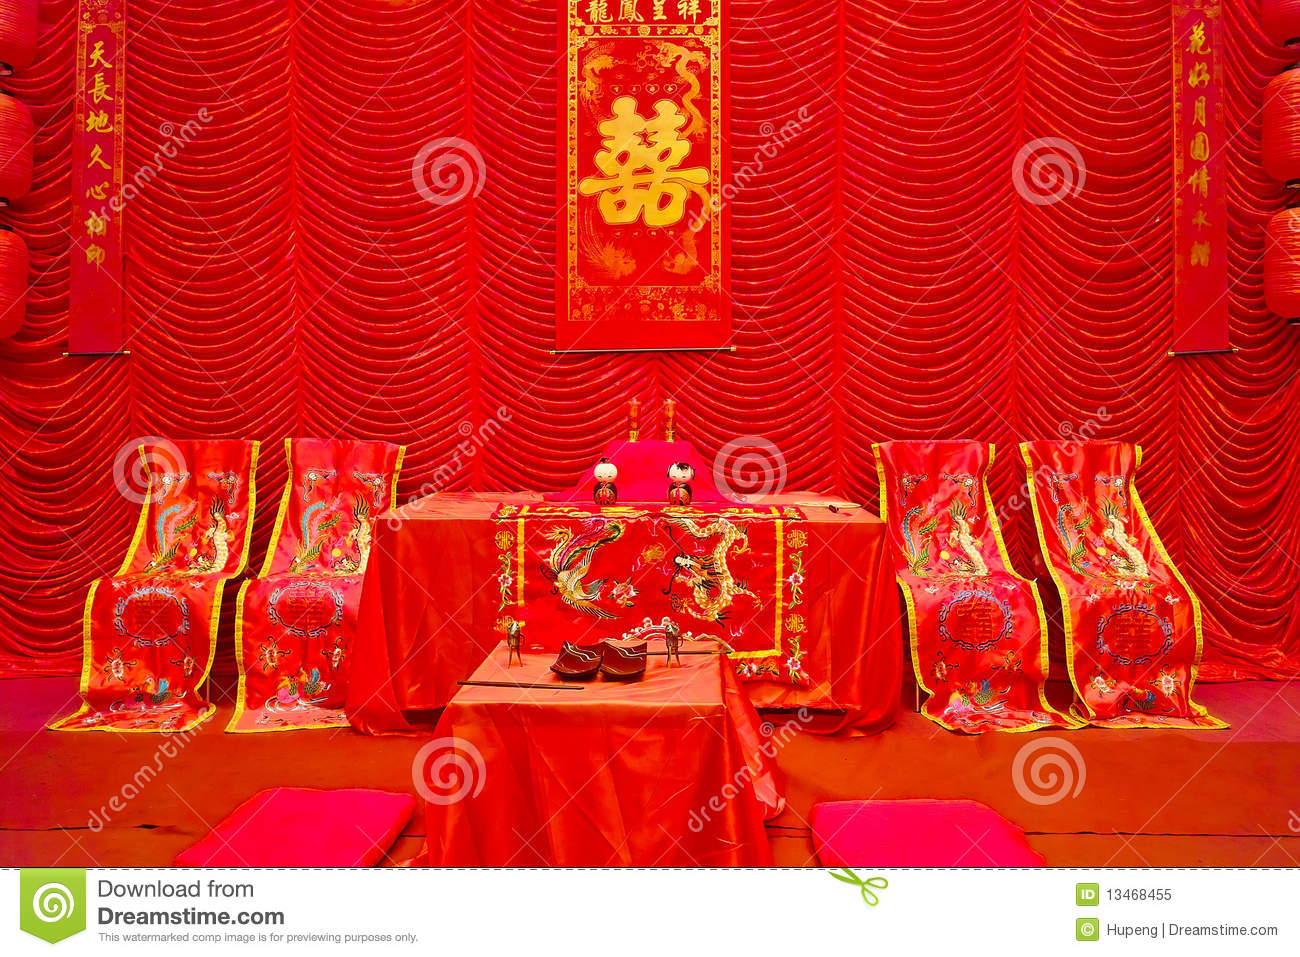 Chinese traditional wedding setting royalty free stock for Asian wedding bed decoration ideas